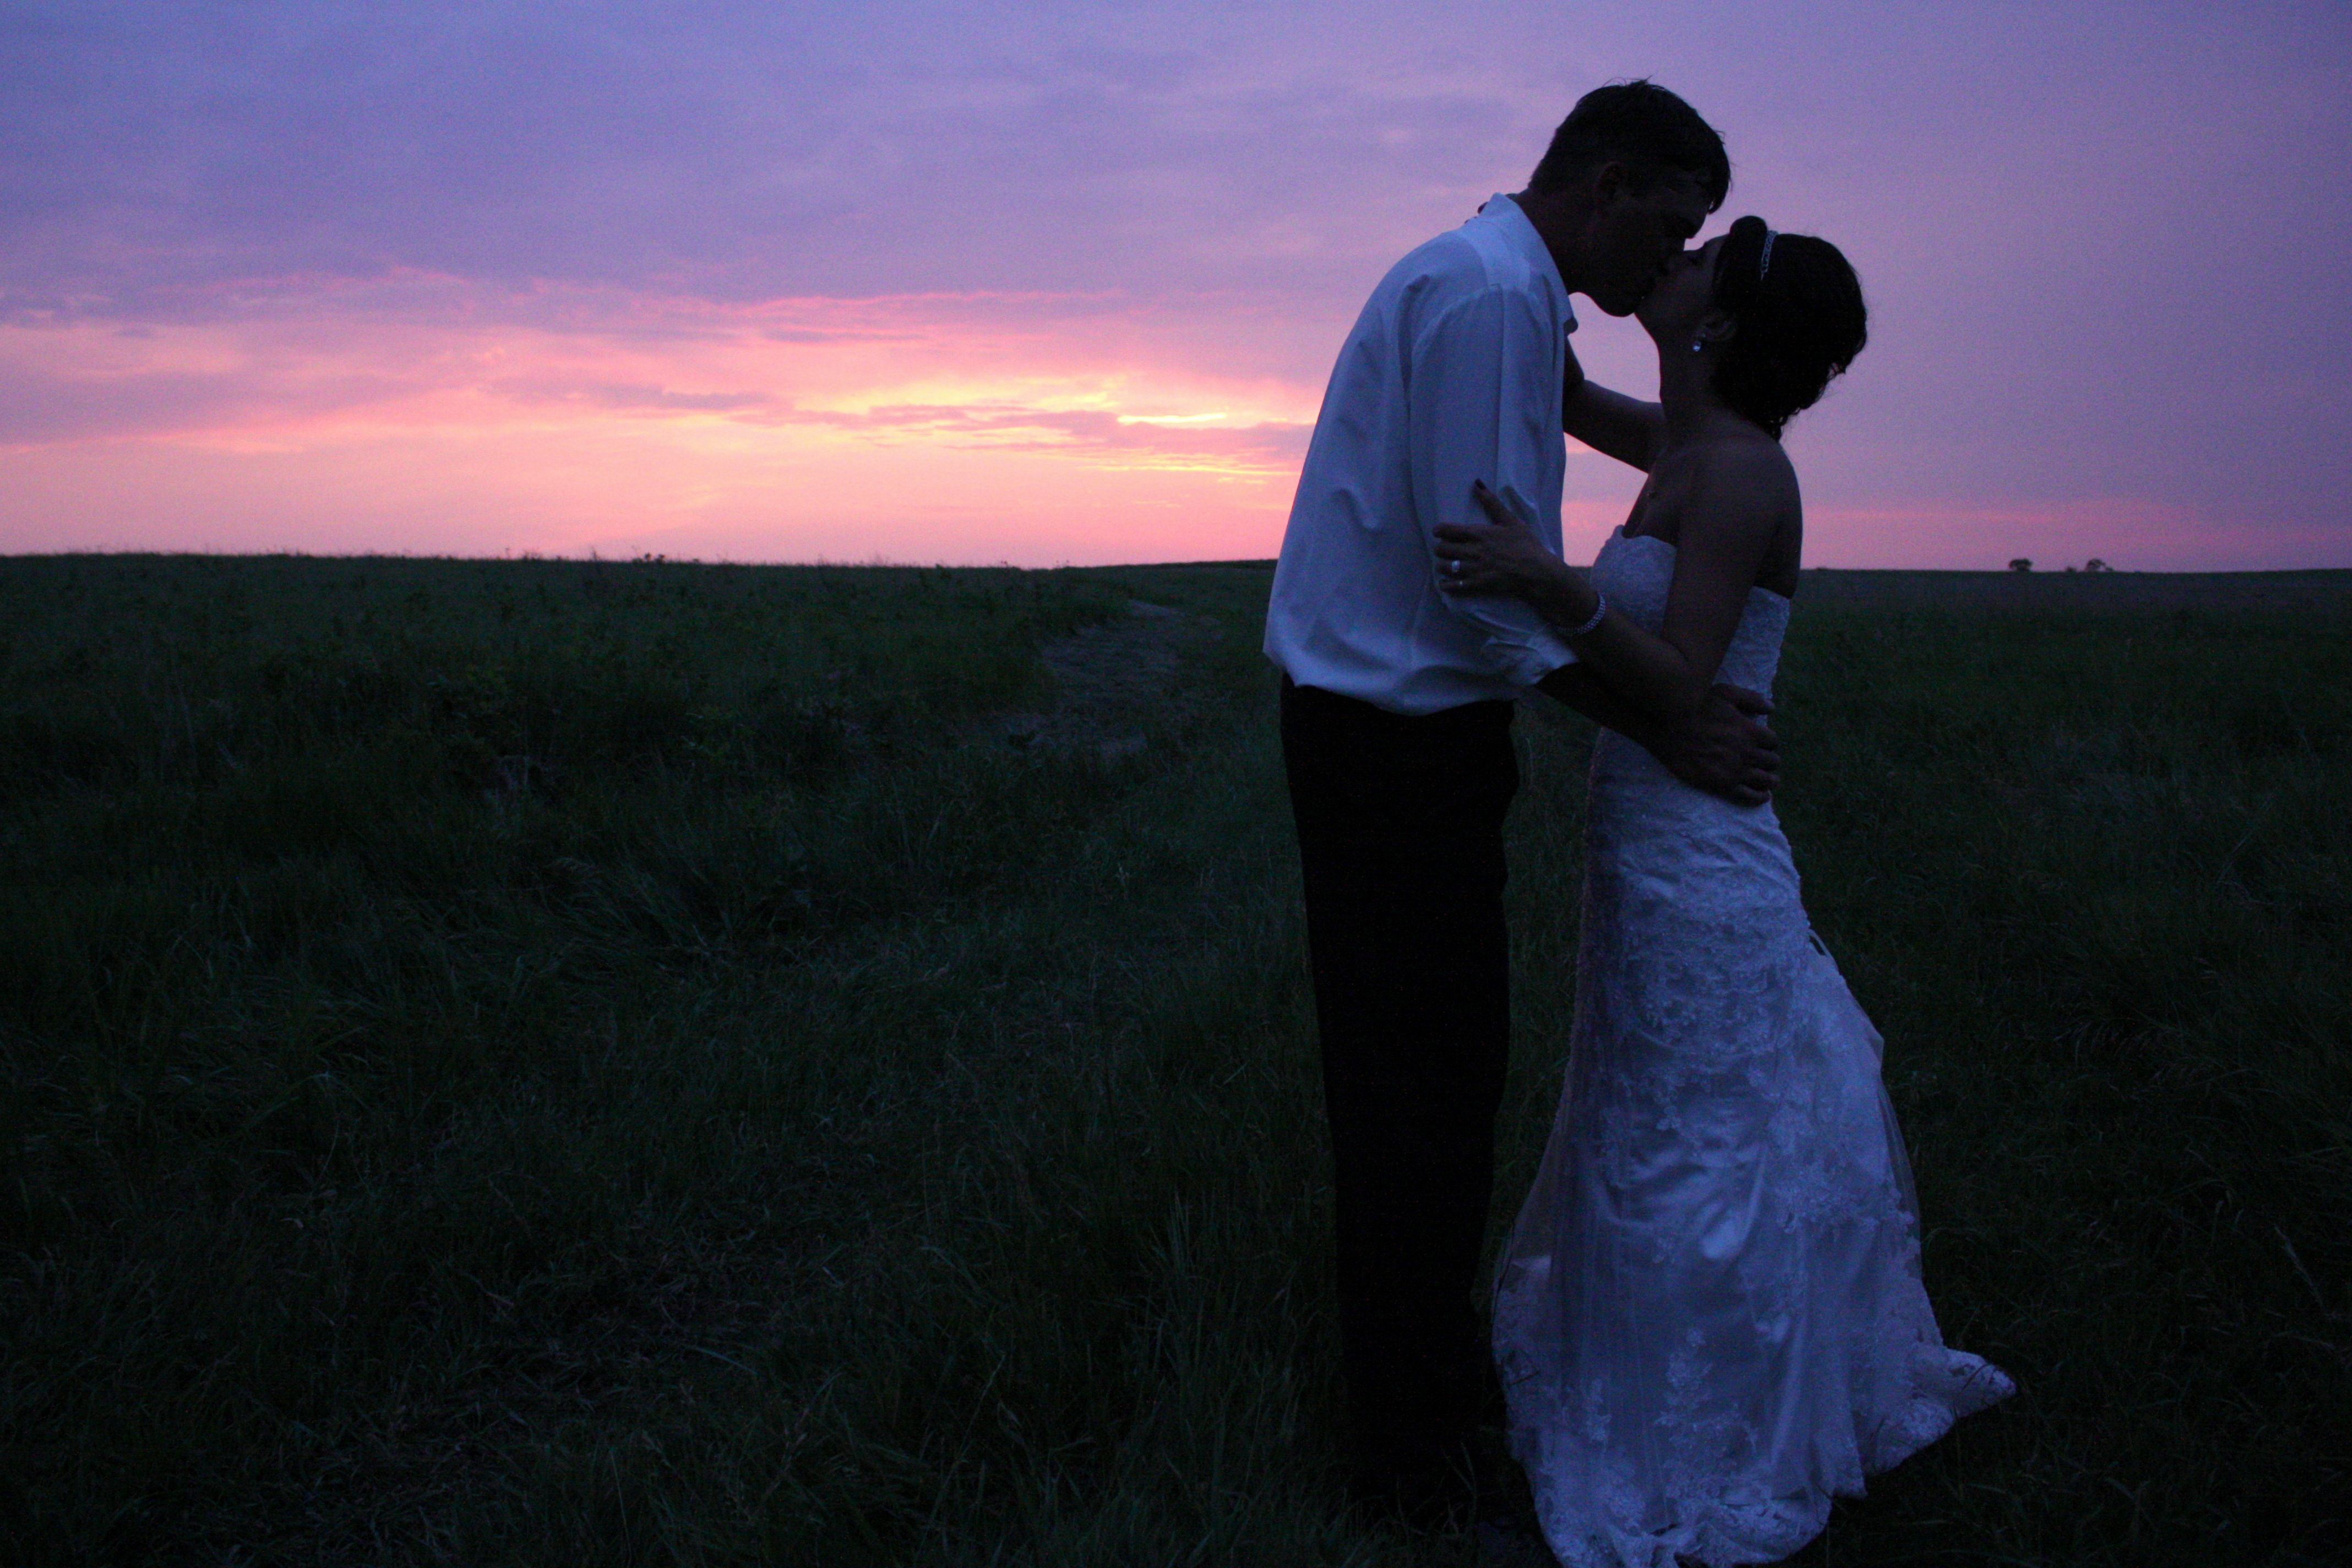 Sunset picture I took at my cousin's wedding